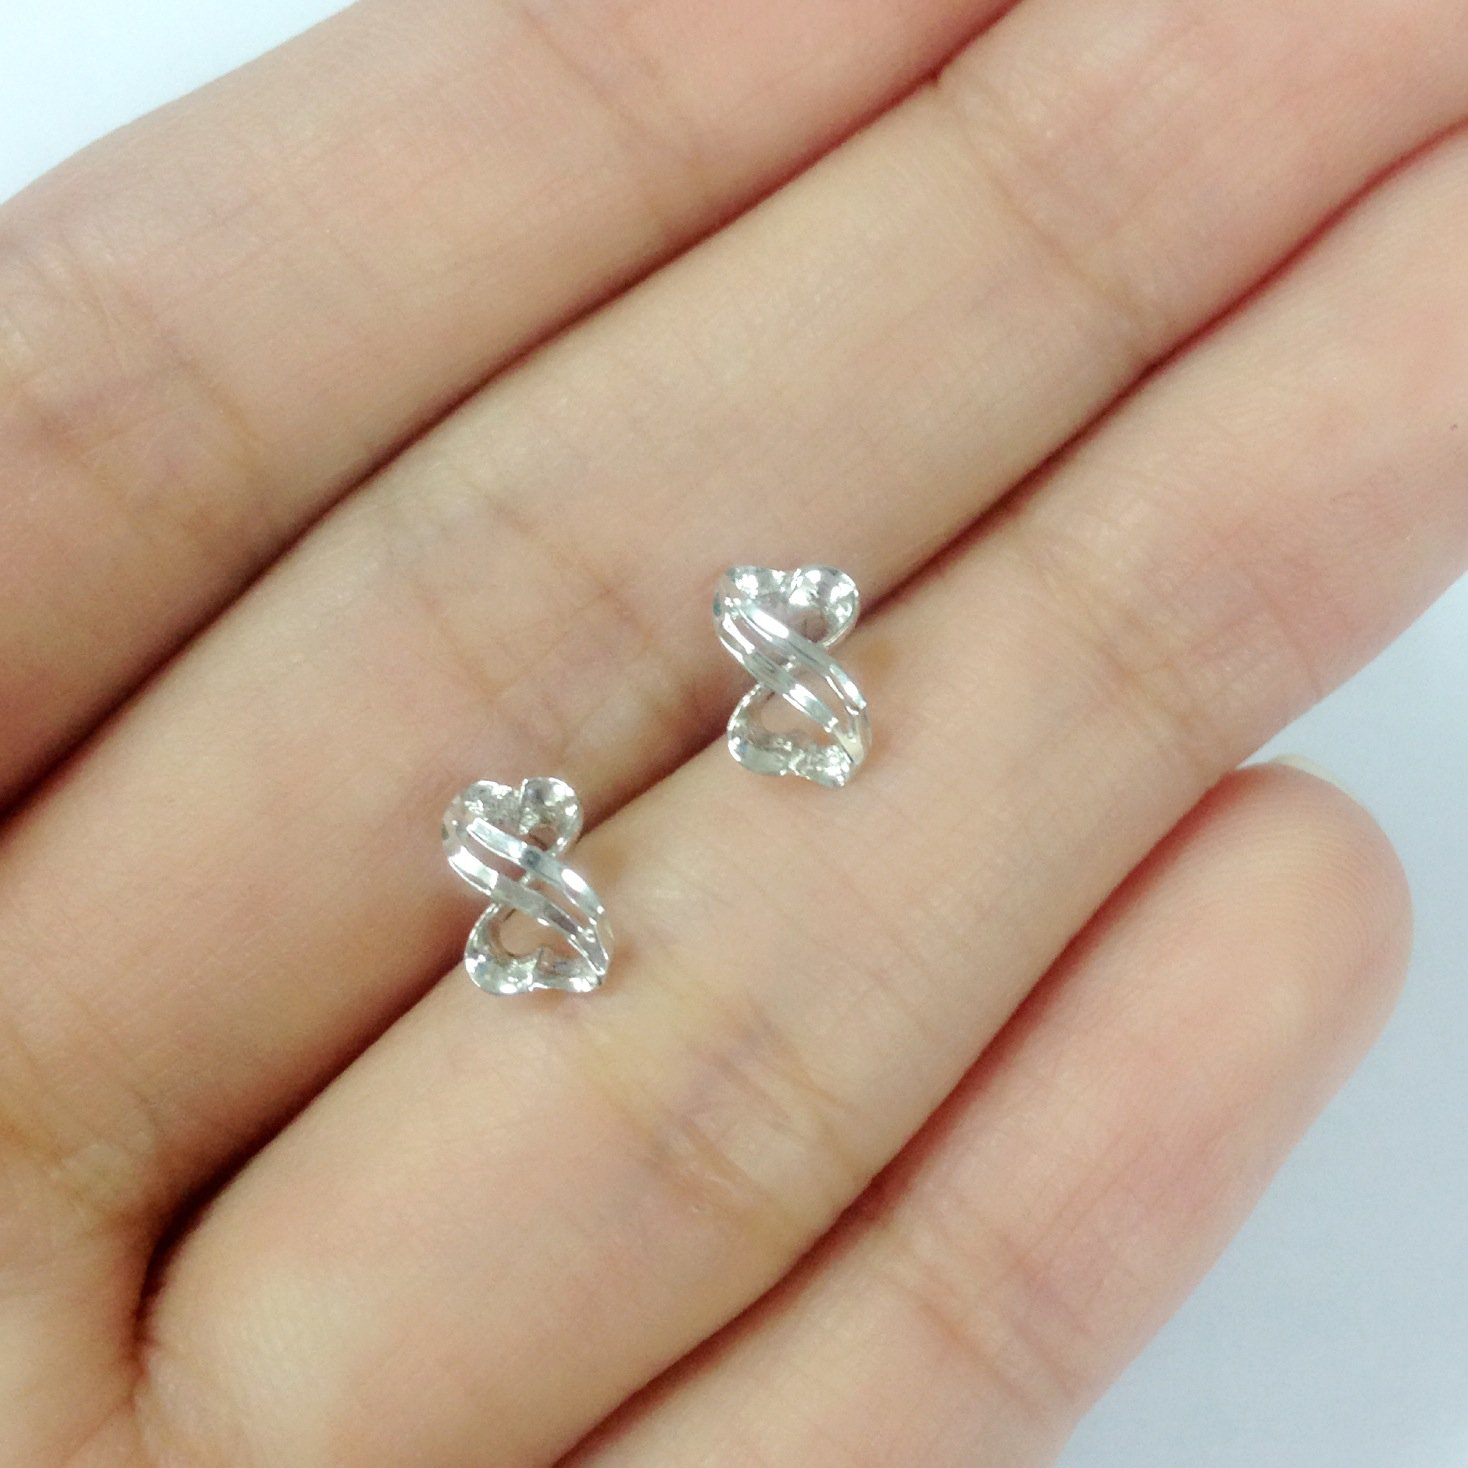 14K White Gold Gift Diamond-Cut Infinity Stud Earrings Jewelry For Couple C05685E